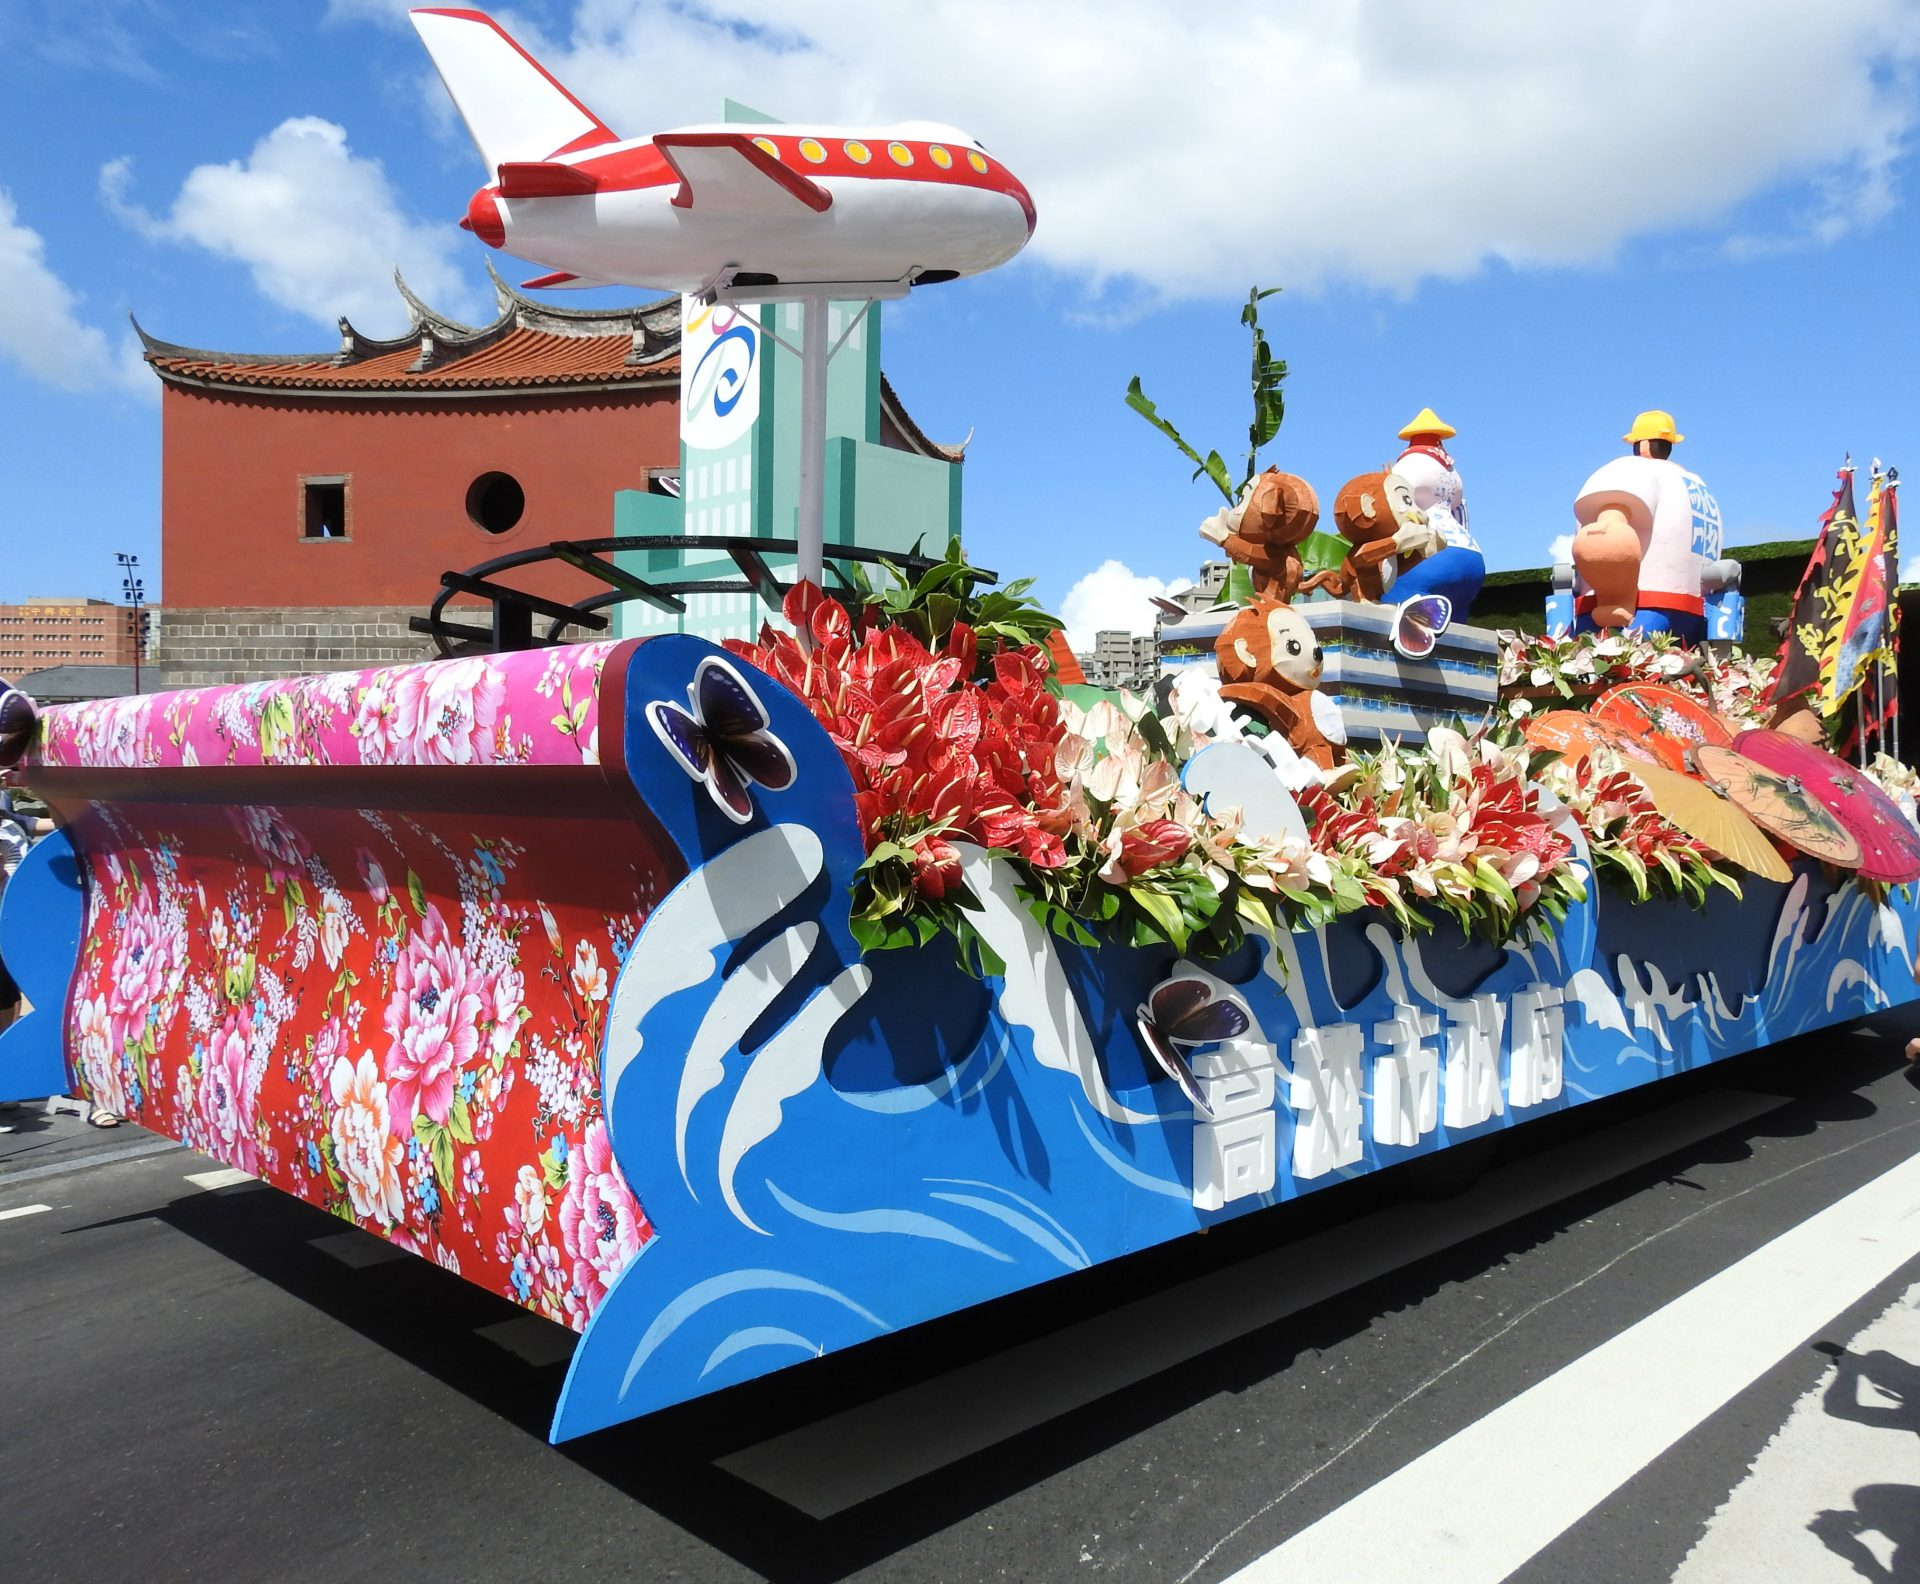 The float presented by the Kaohsiung City Government is covered with models of purple crow butterflies. (Image: Billy Shyu/ Vision Times)